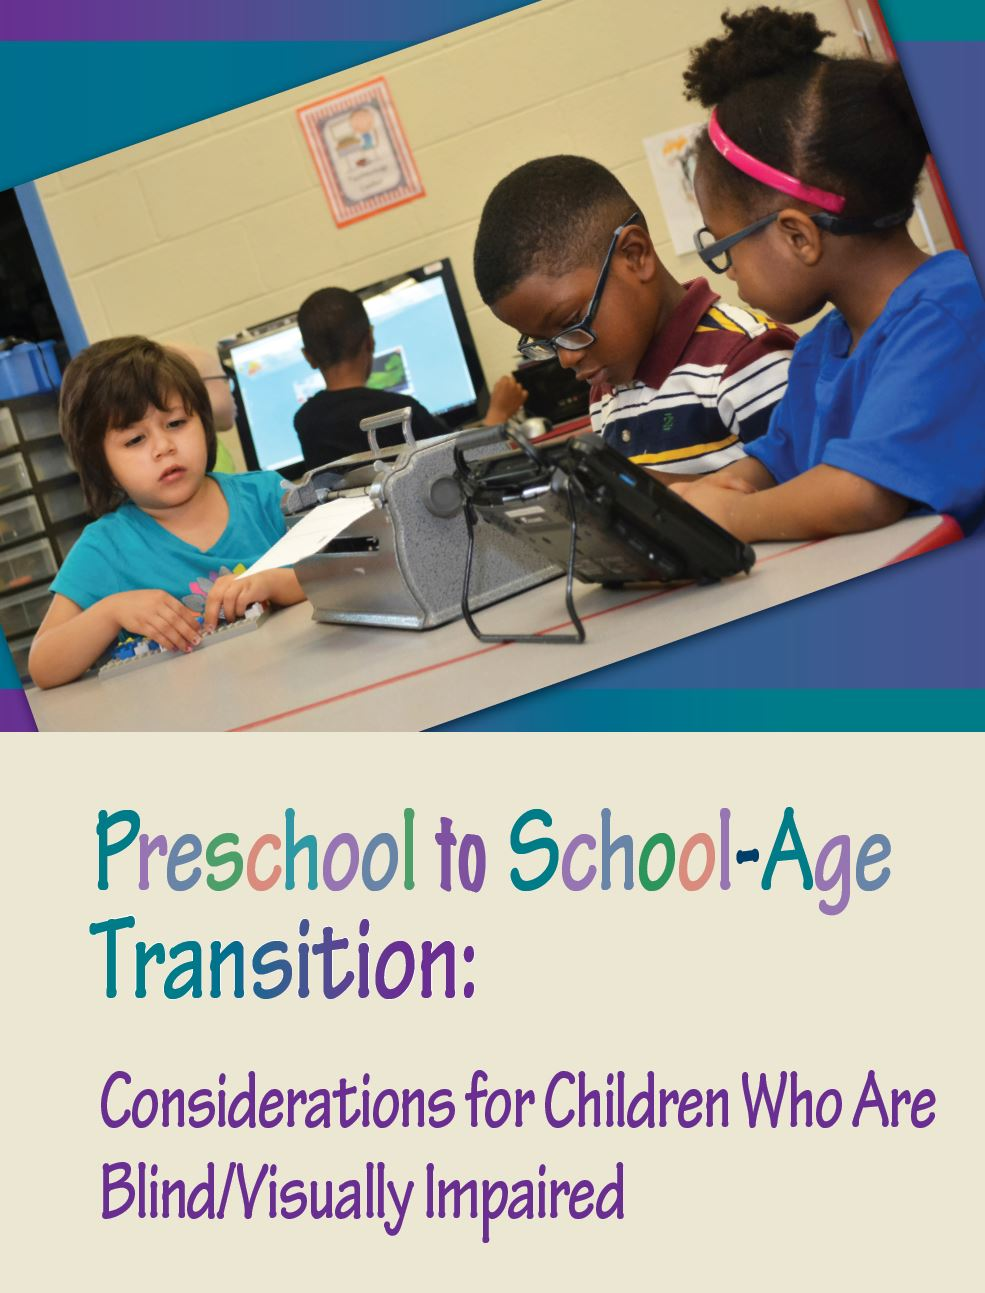 Preschool to School-Age Transition: Considerations for Children Who Are Blind/Visually Impaired